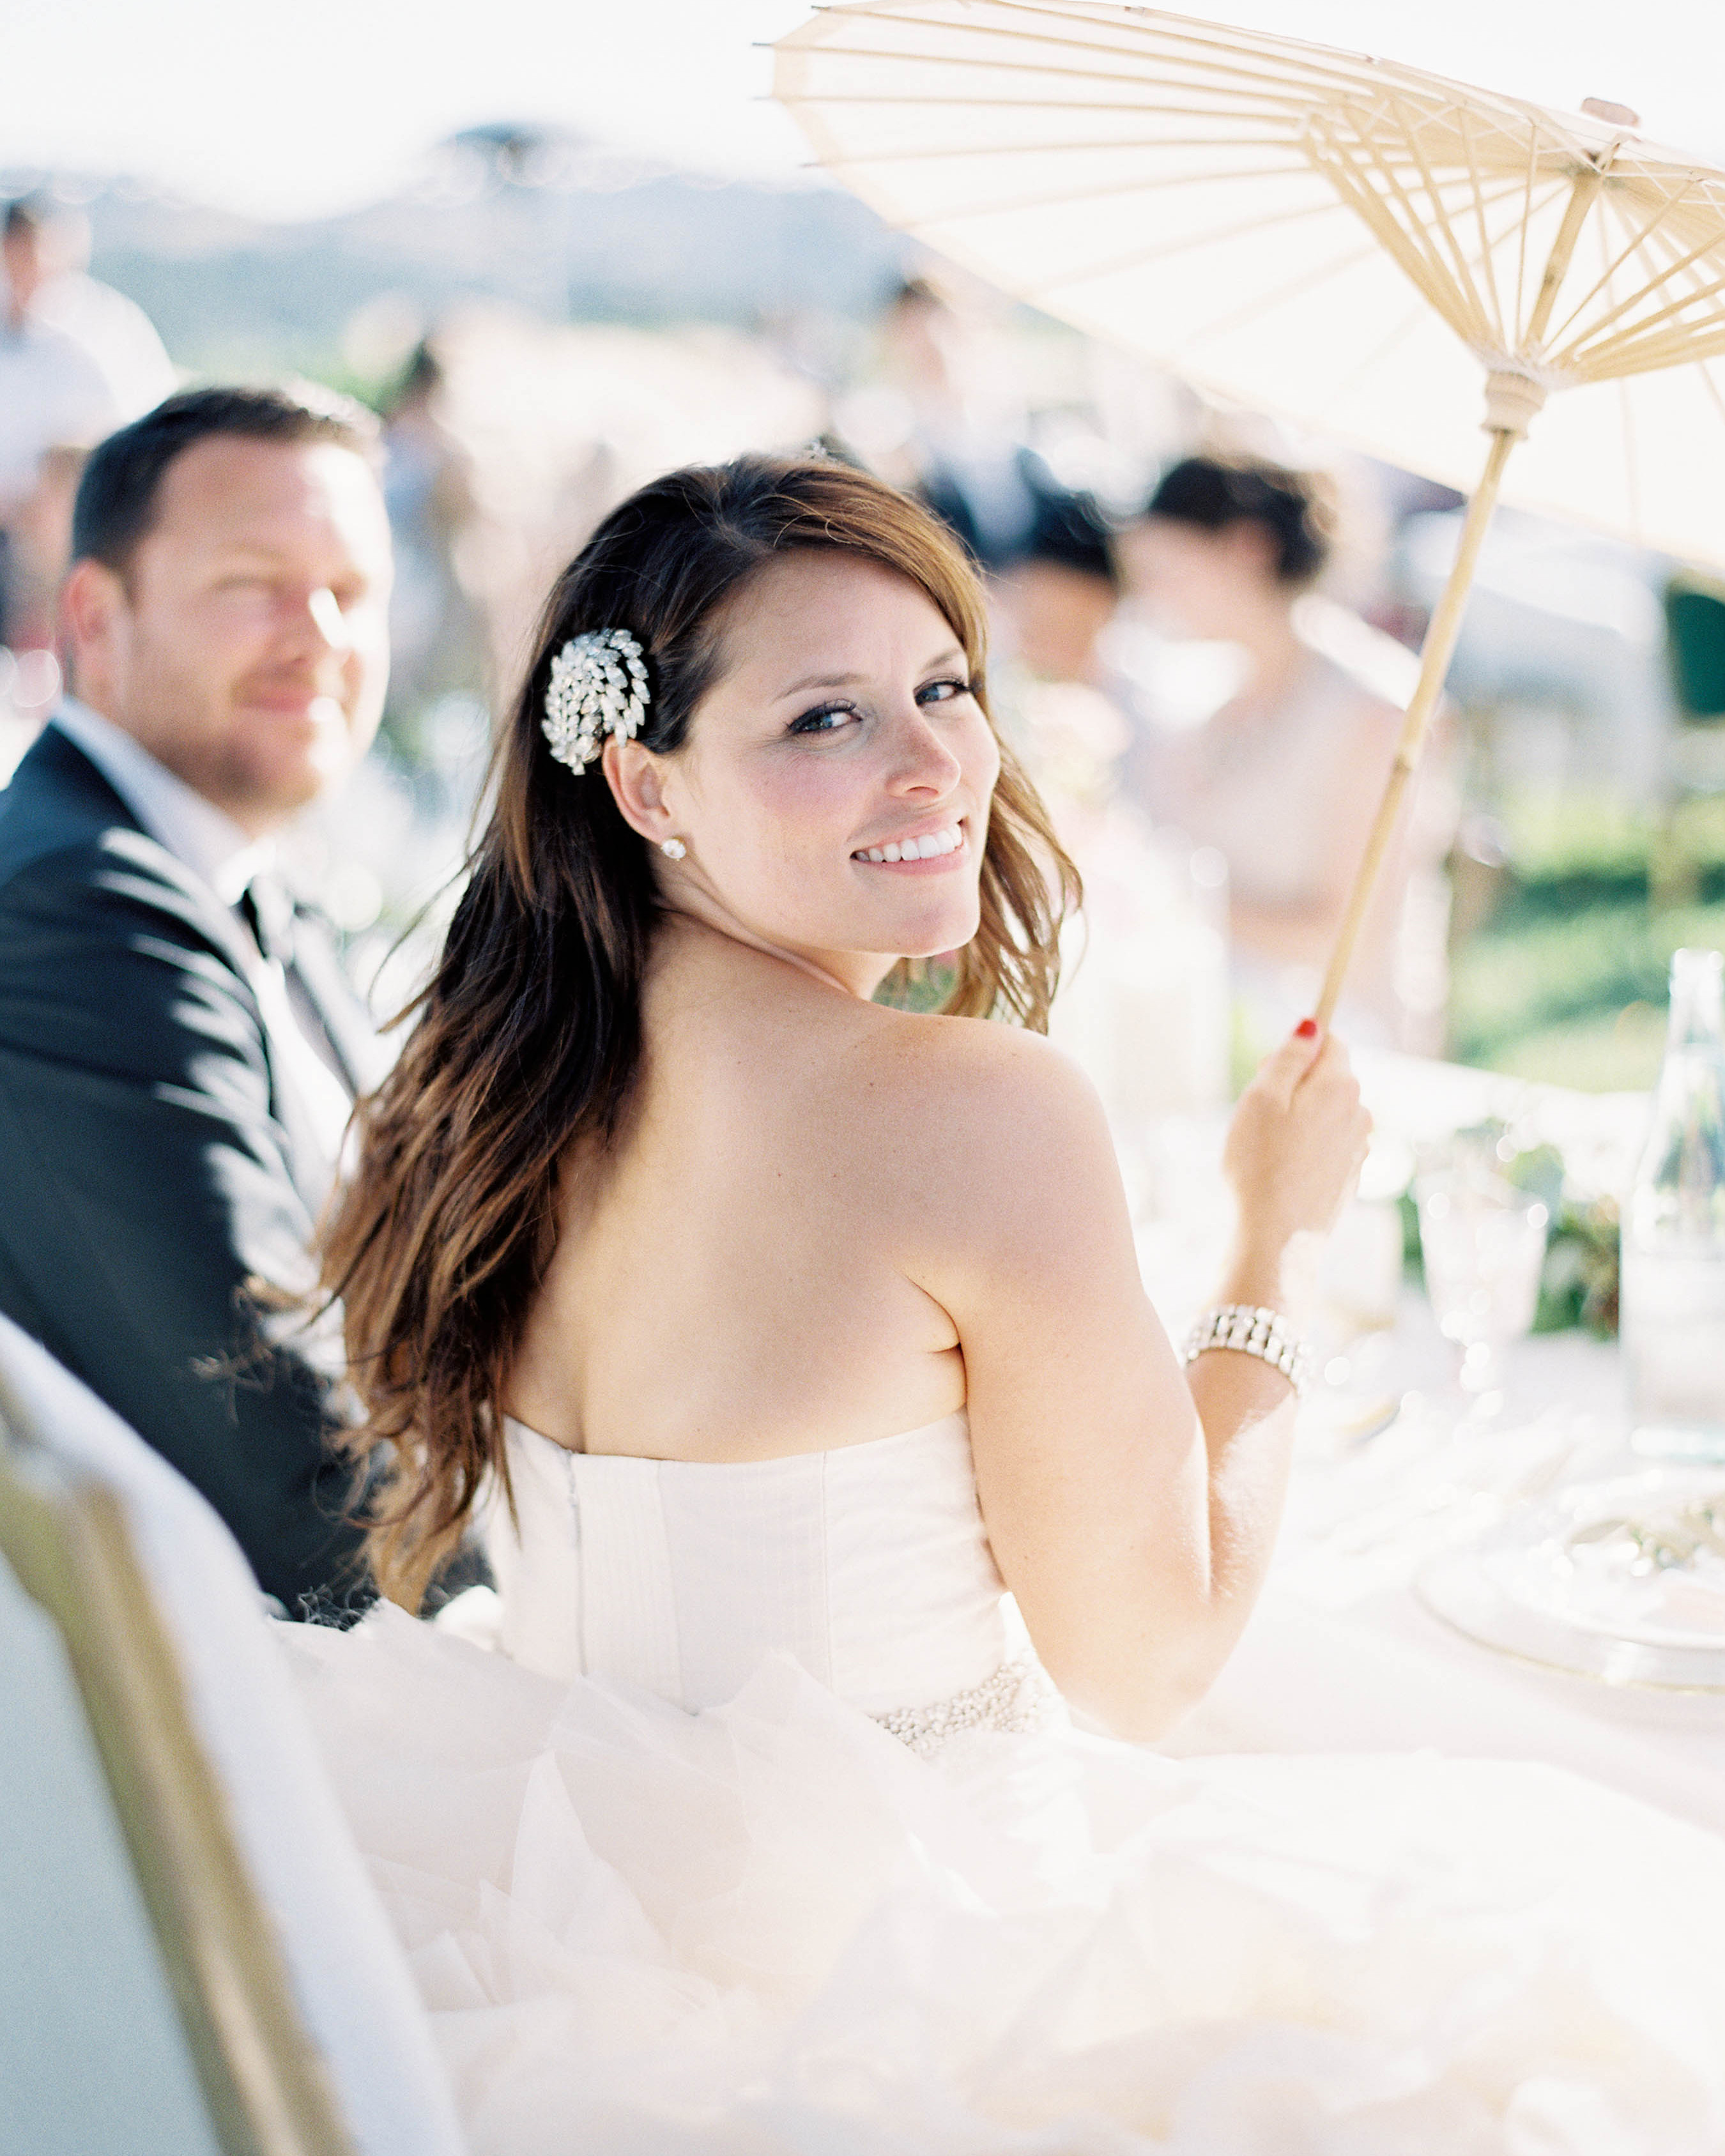 Long Wedding Hairstyles Down: 33 Ways To Wear Your Hair Down For Your Wedding